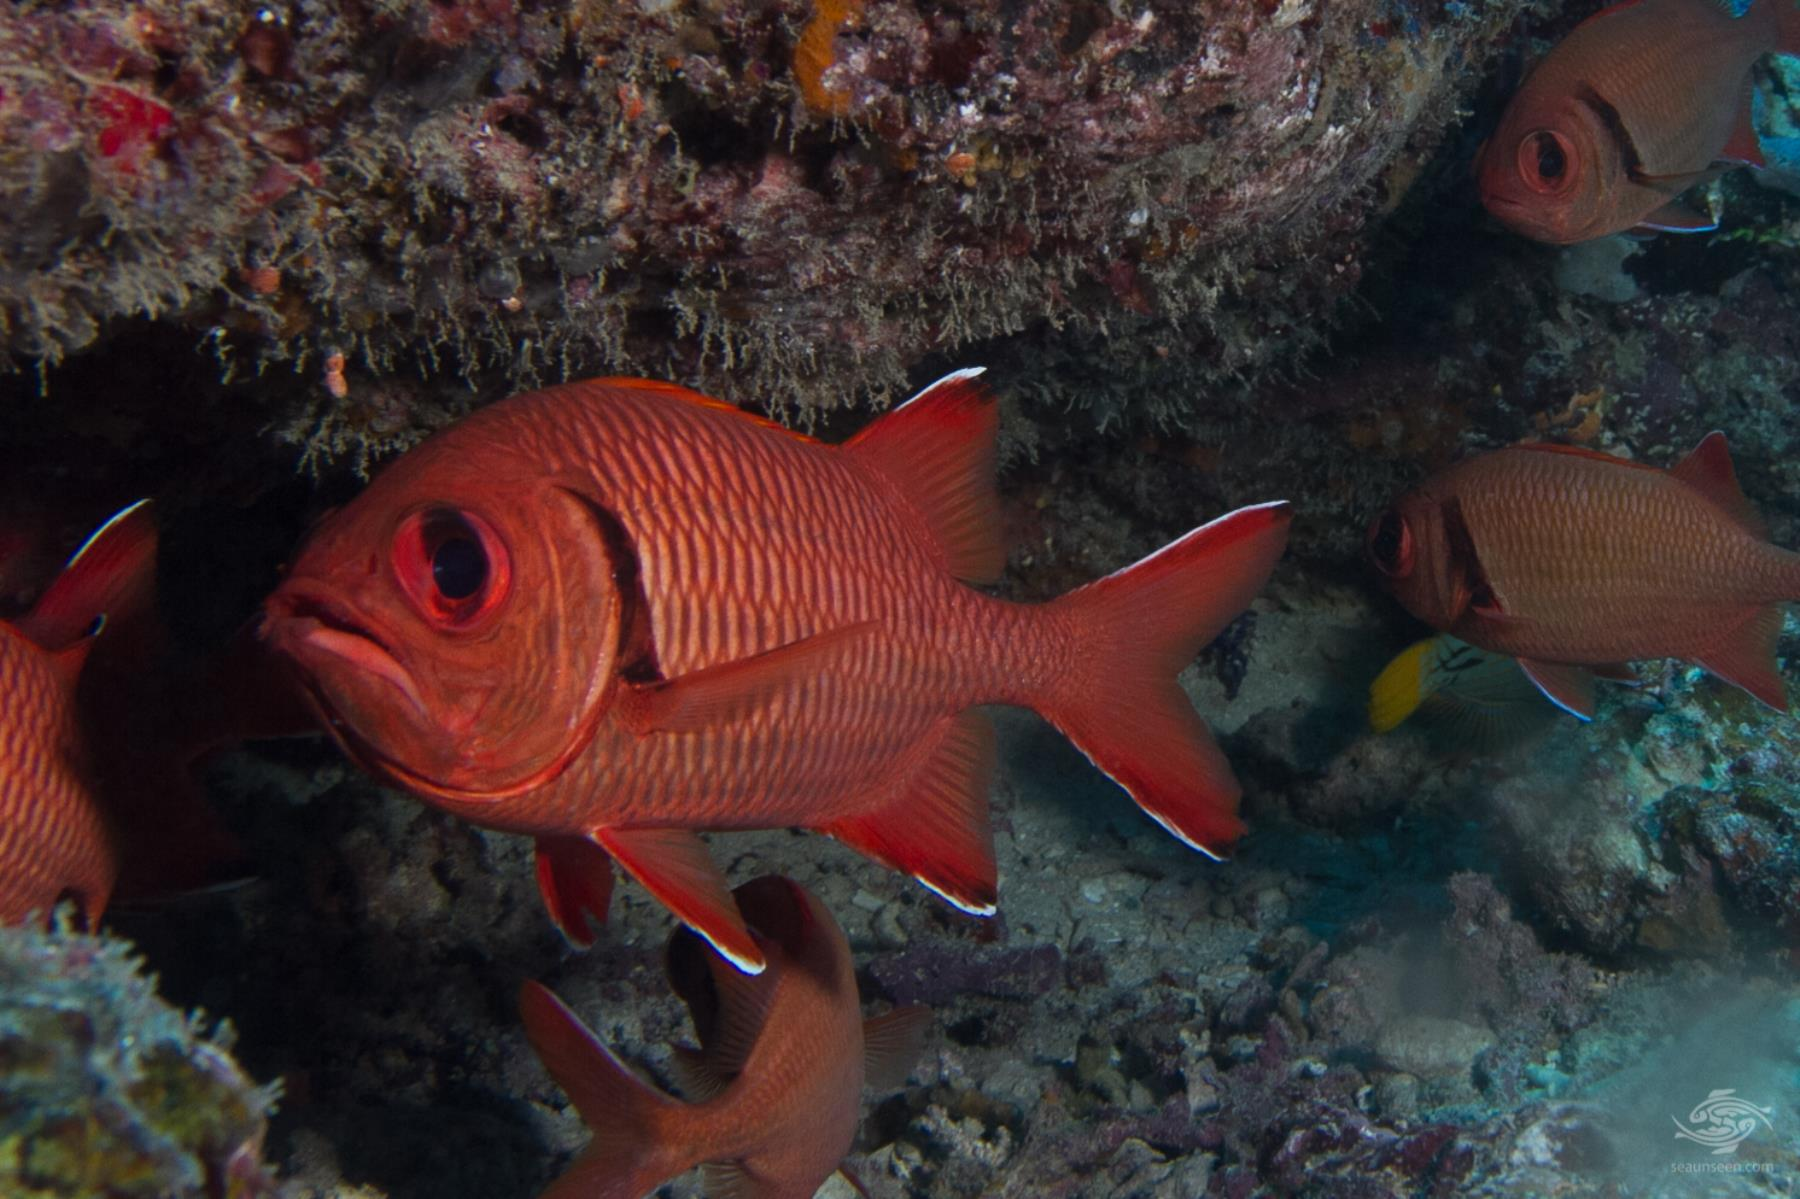 Blotcheye Soldierfish - Facts and Photographs - Seaunseen